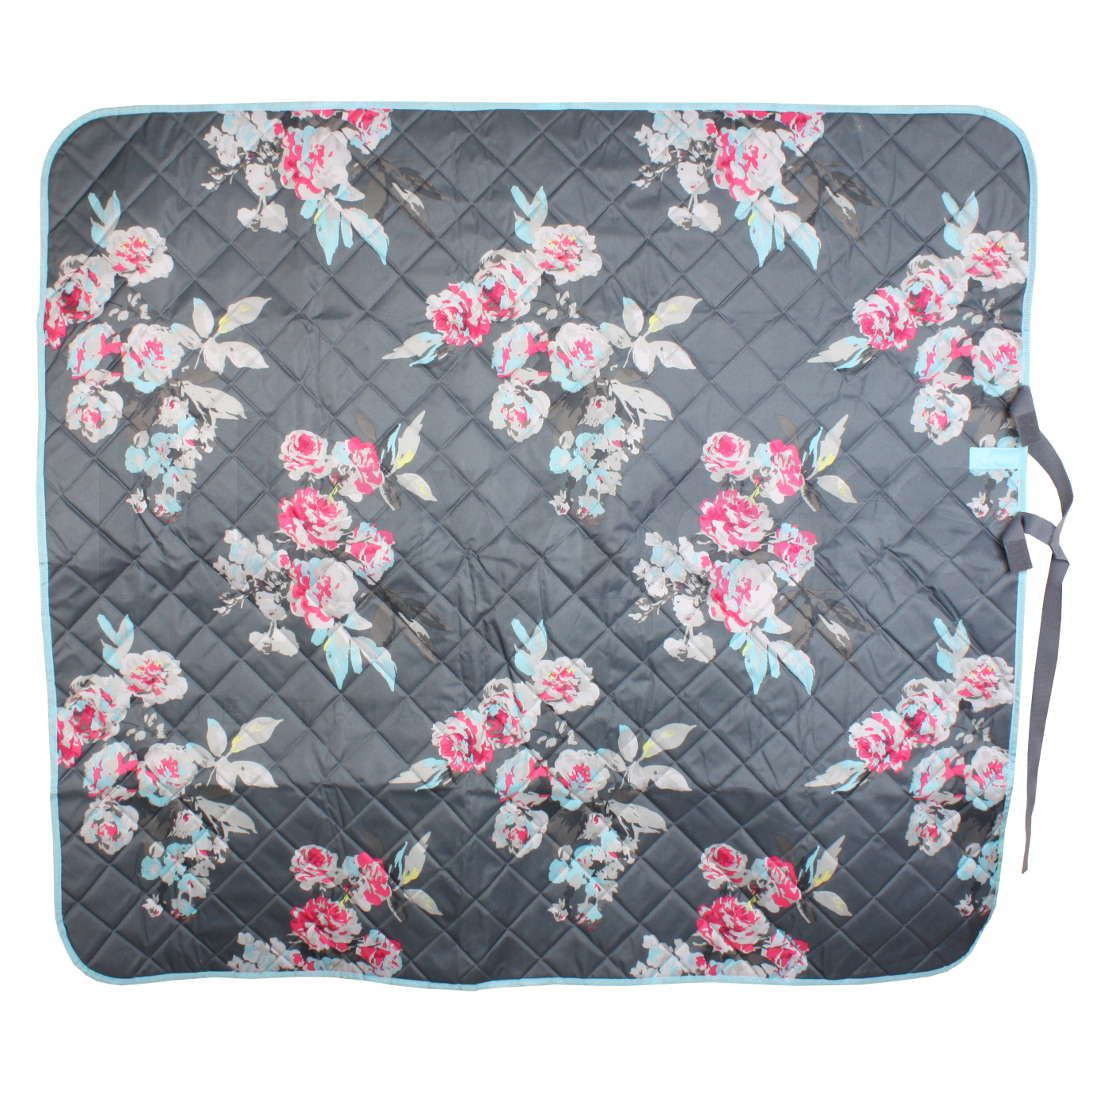 Joules Picnic Rug Grey Floral | Naylors.com